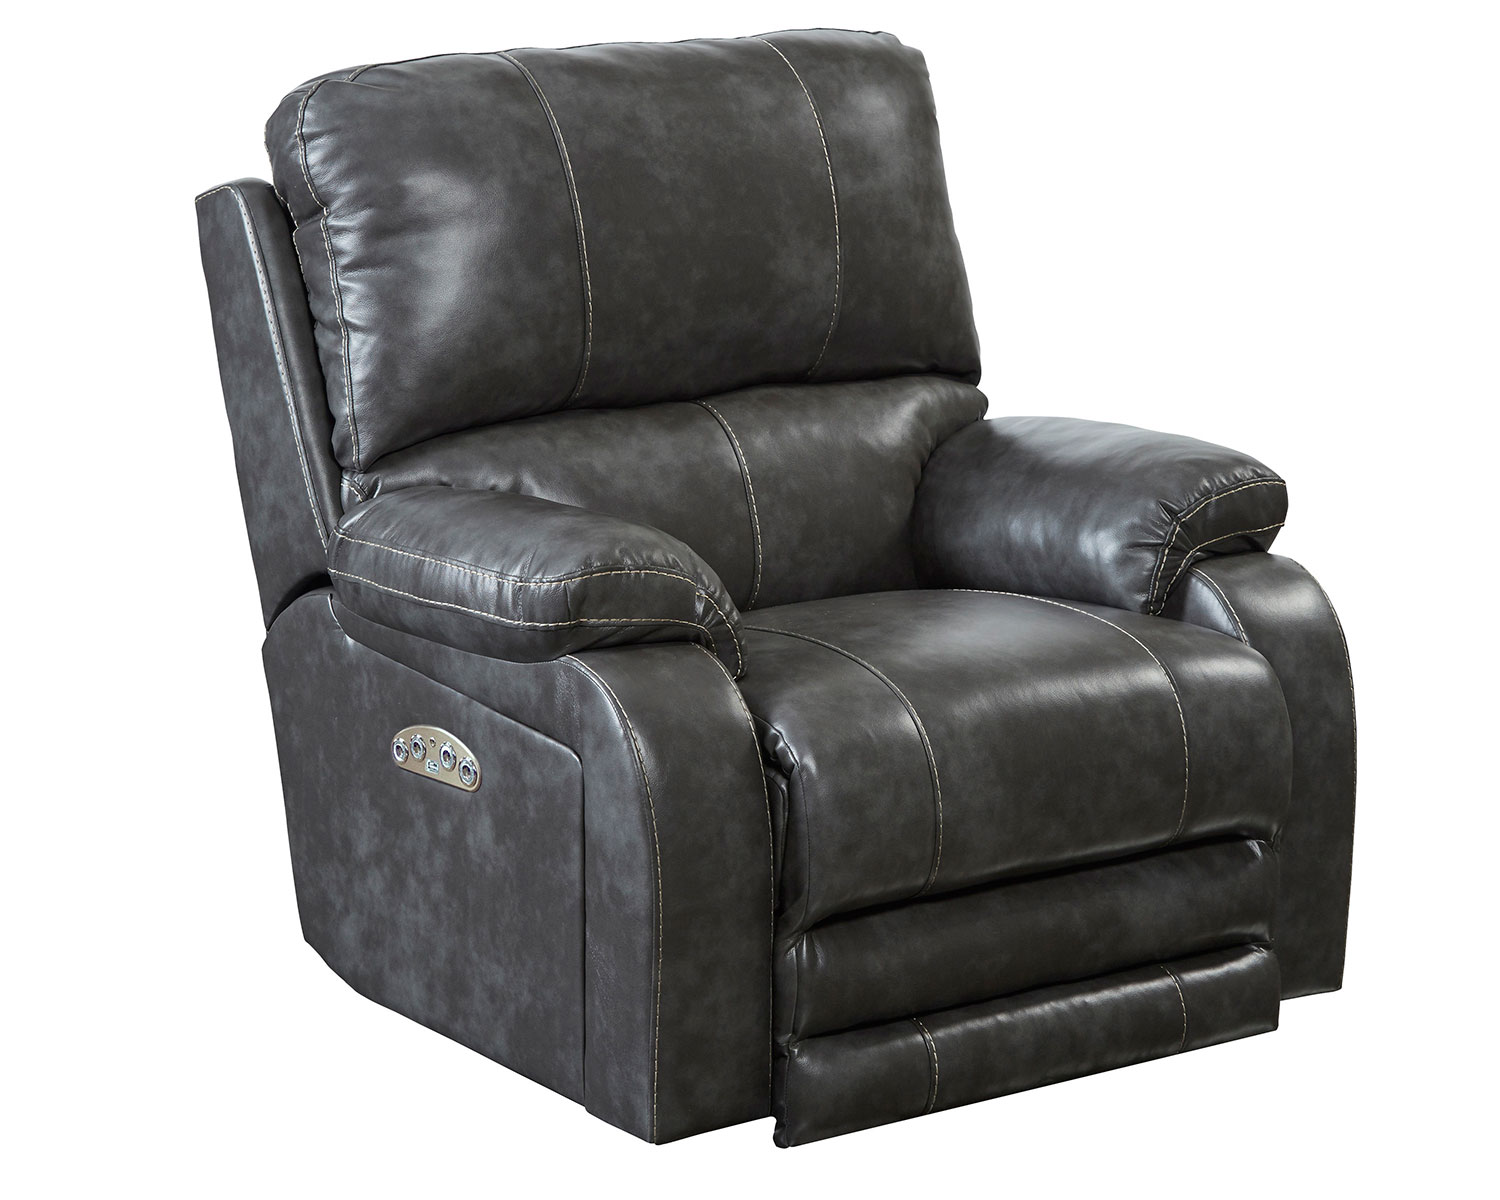 CatNapper Thornton Power Headrest Power Recliner Chair - Steel